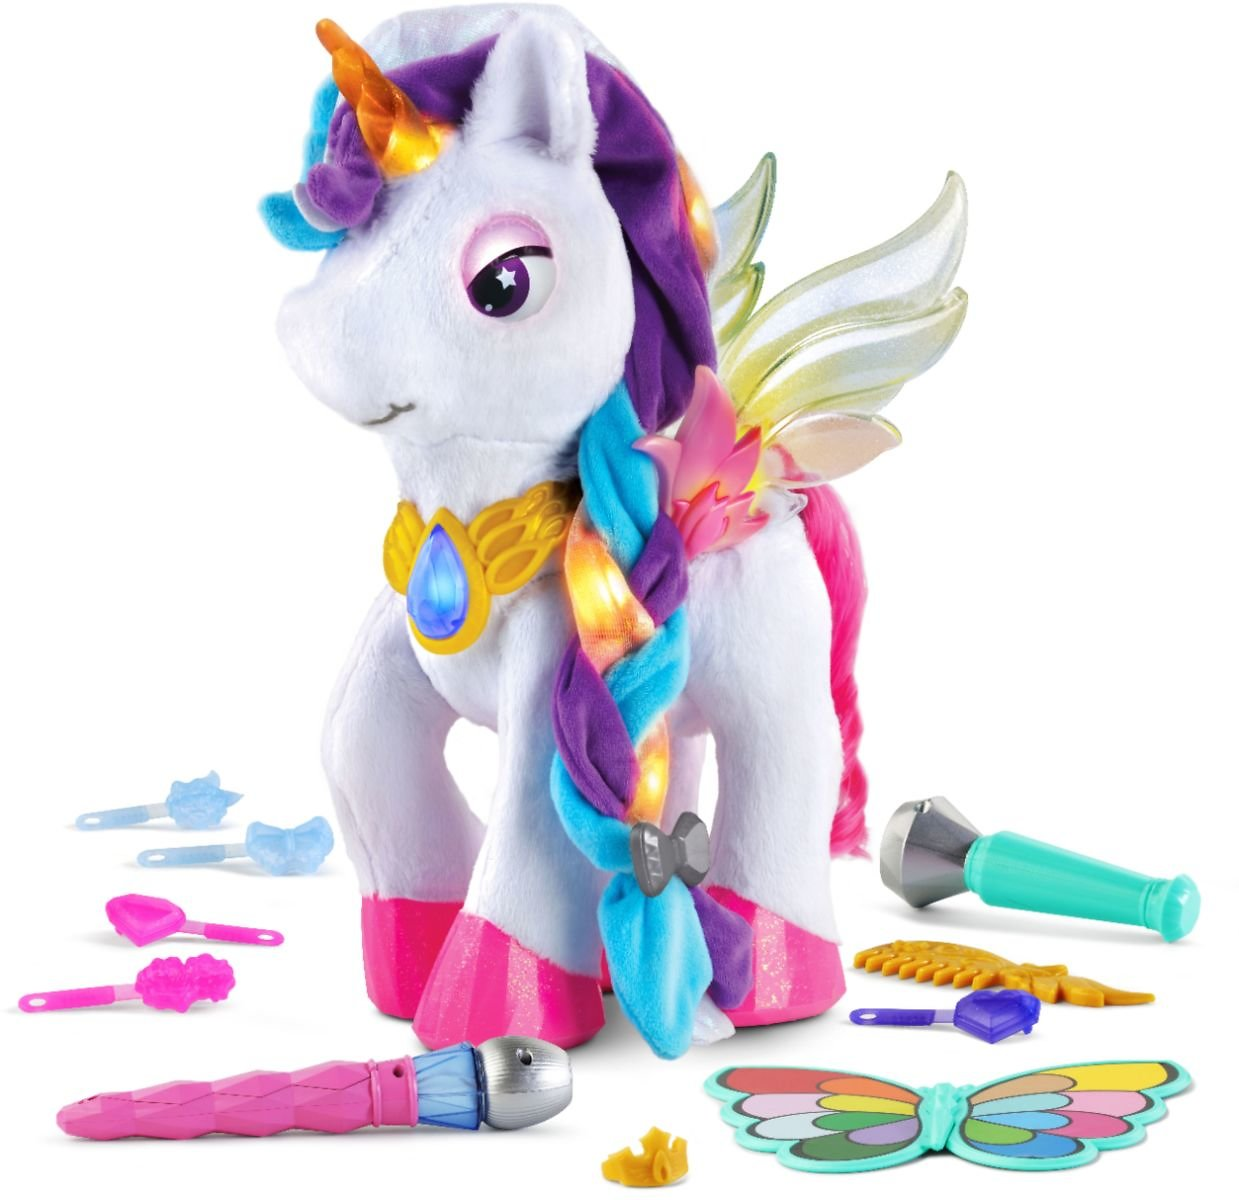 VTech - Myla The Magical Unicorn